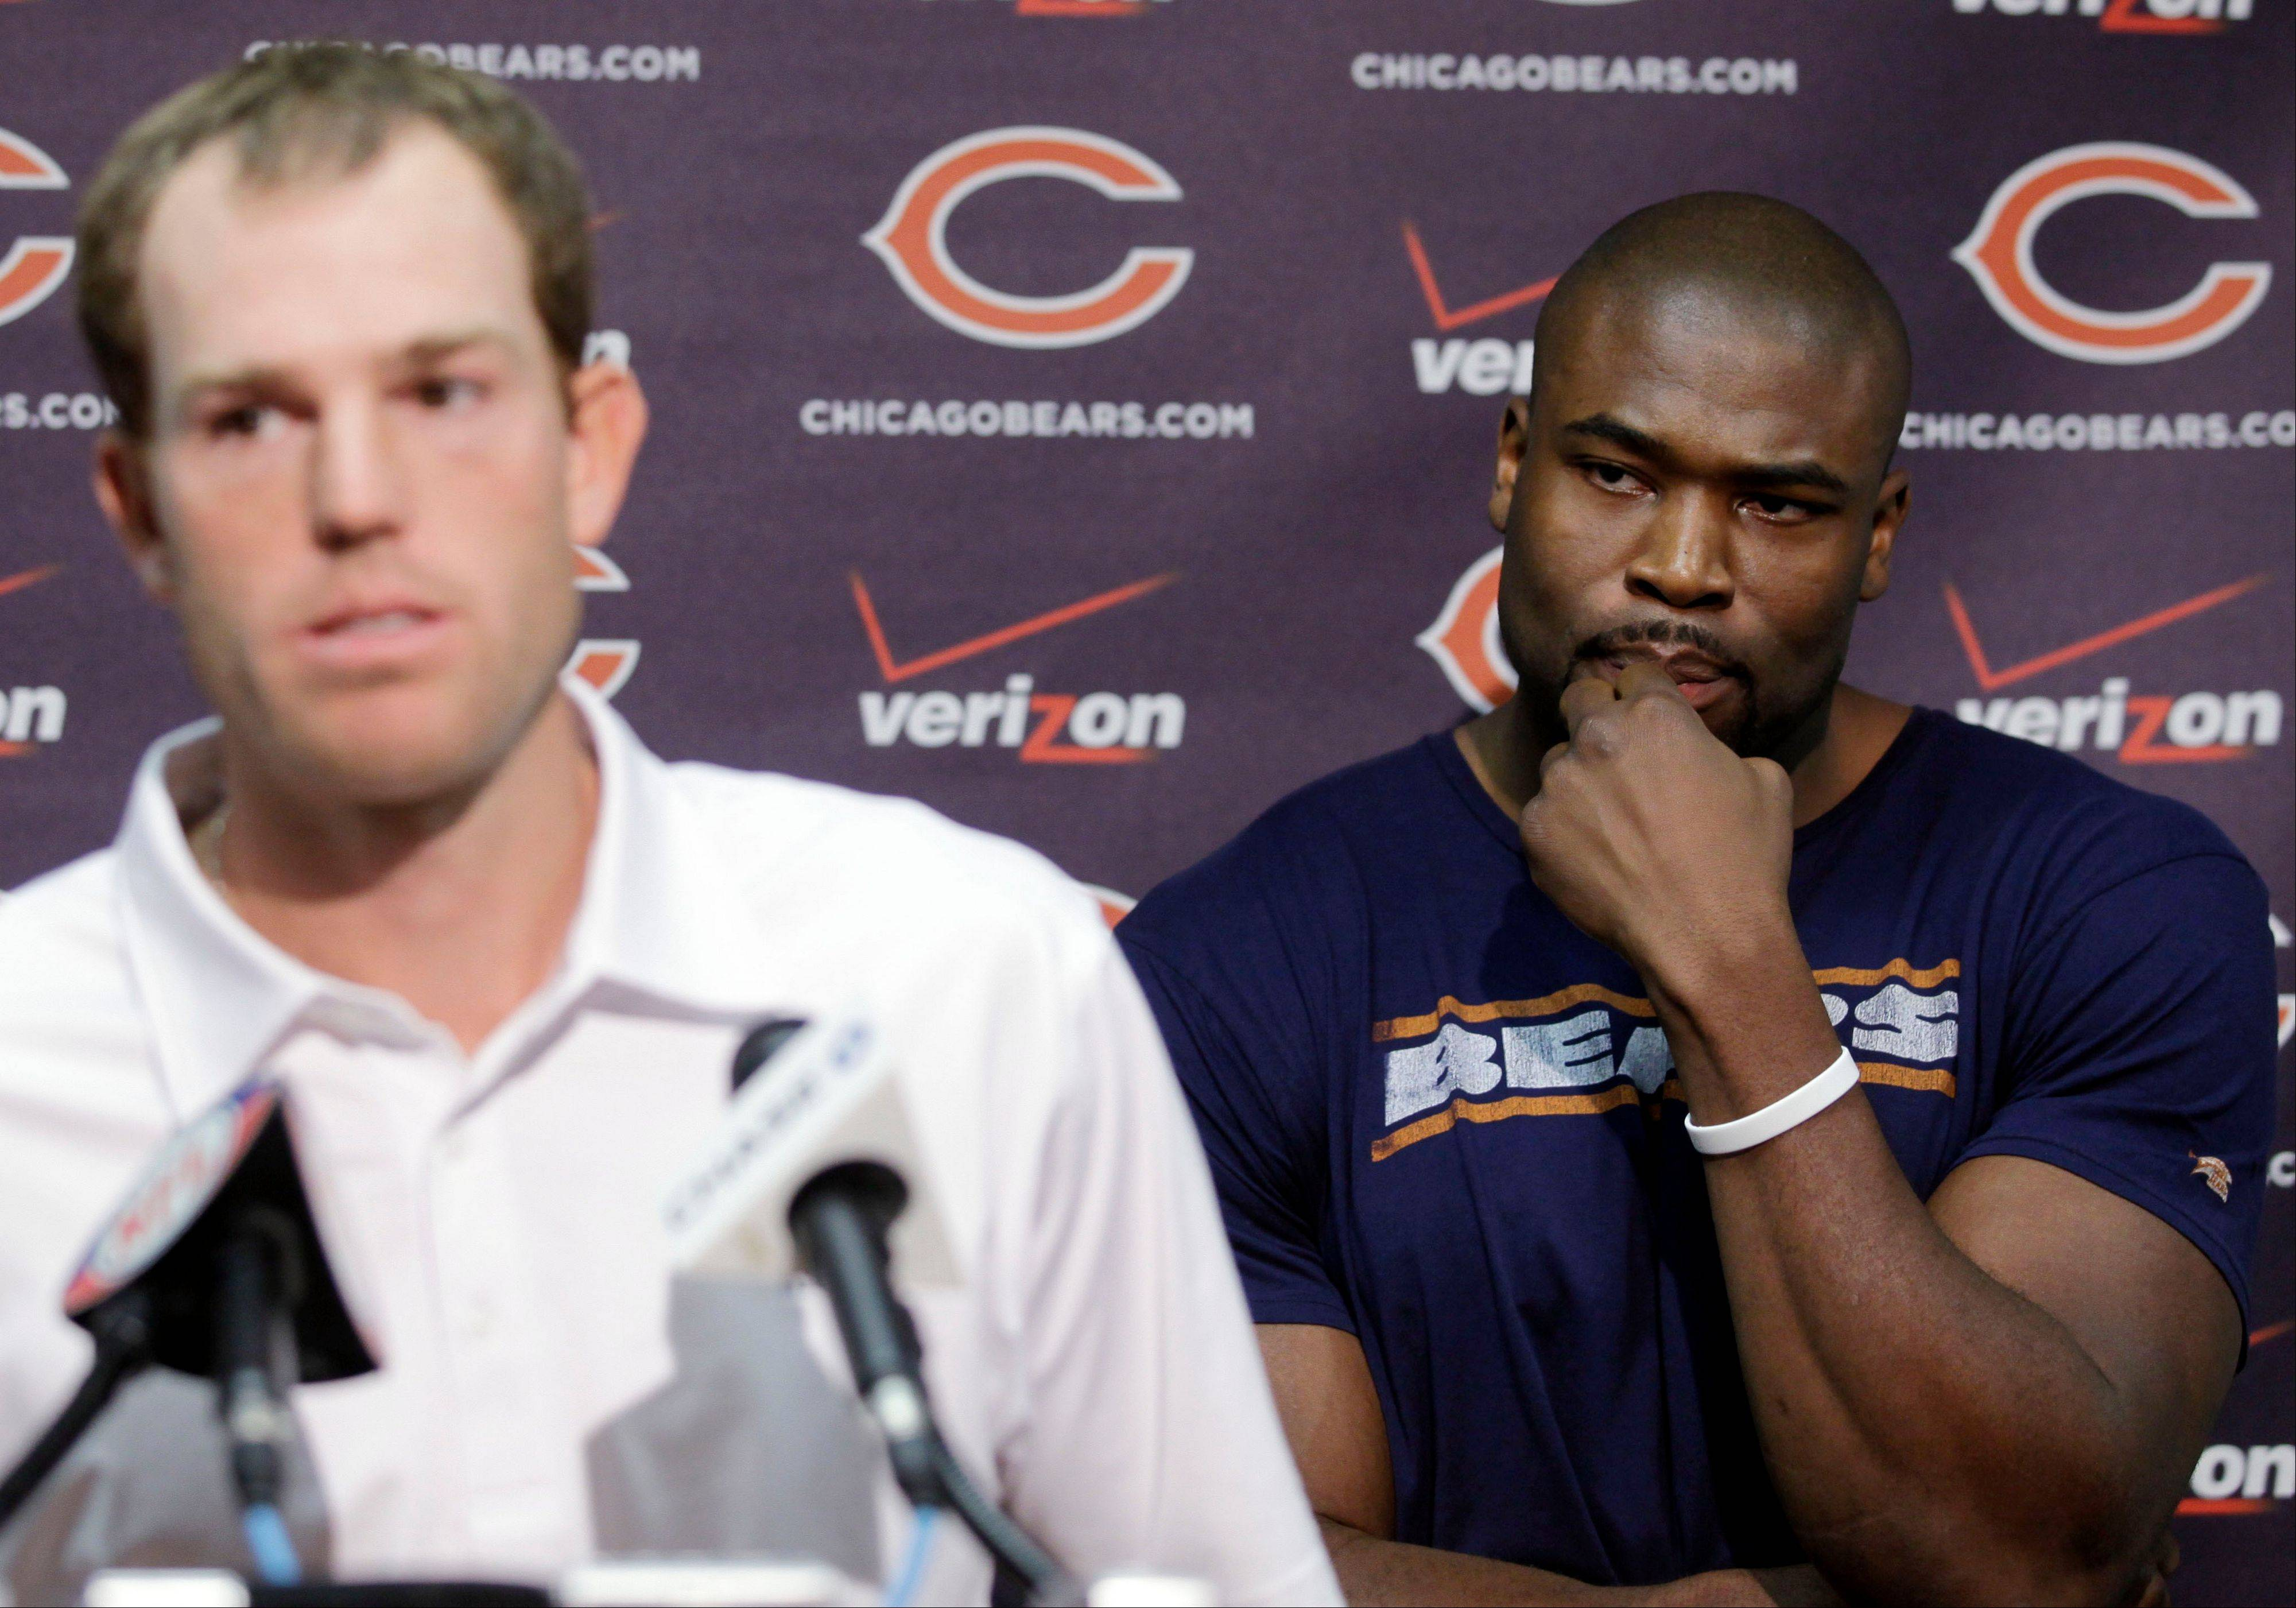 Bears players: We're ready to go